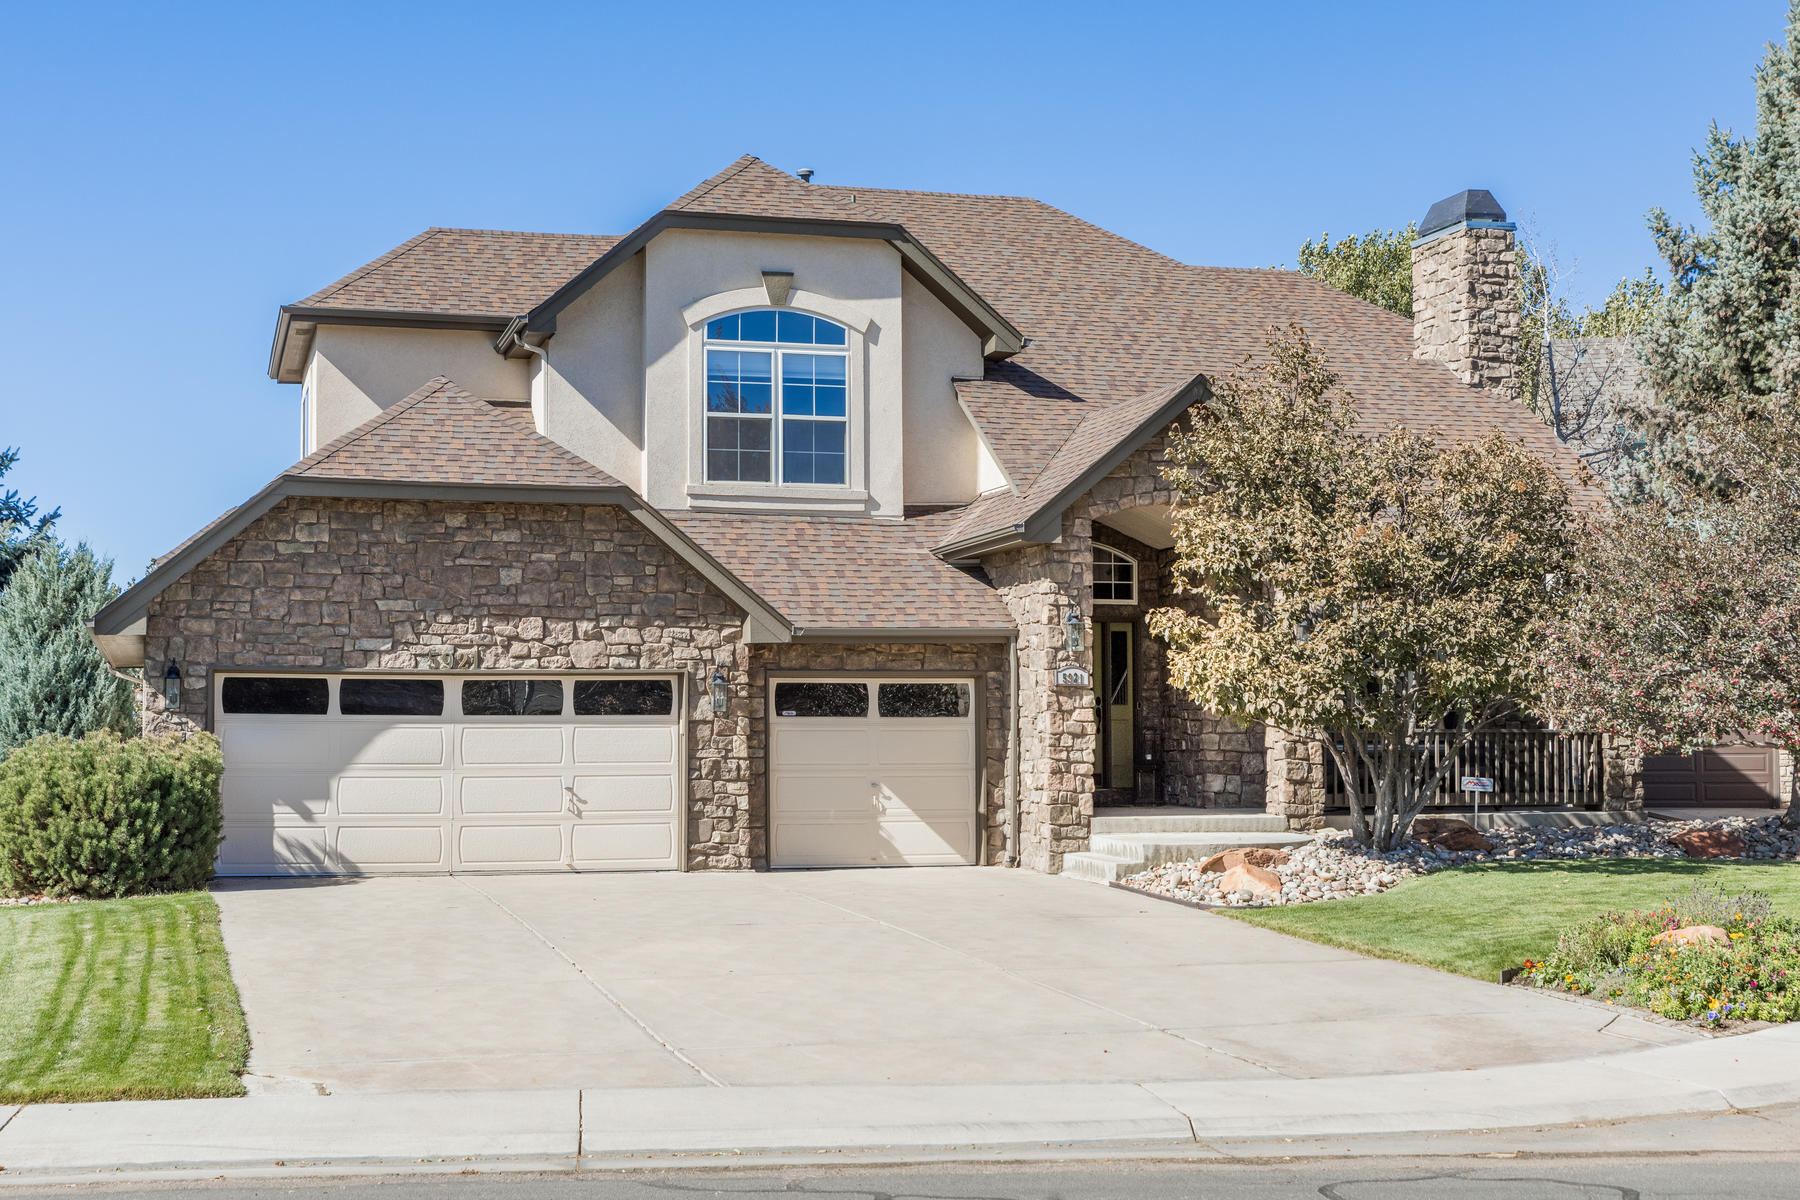 Single Family Homes for Sale at Enjoy your Colorado natural and active lifestyle in this splendid home! 5921 S Eagle St Centennial, Colorado 80016 United States